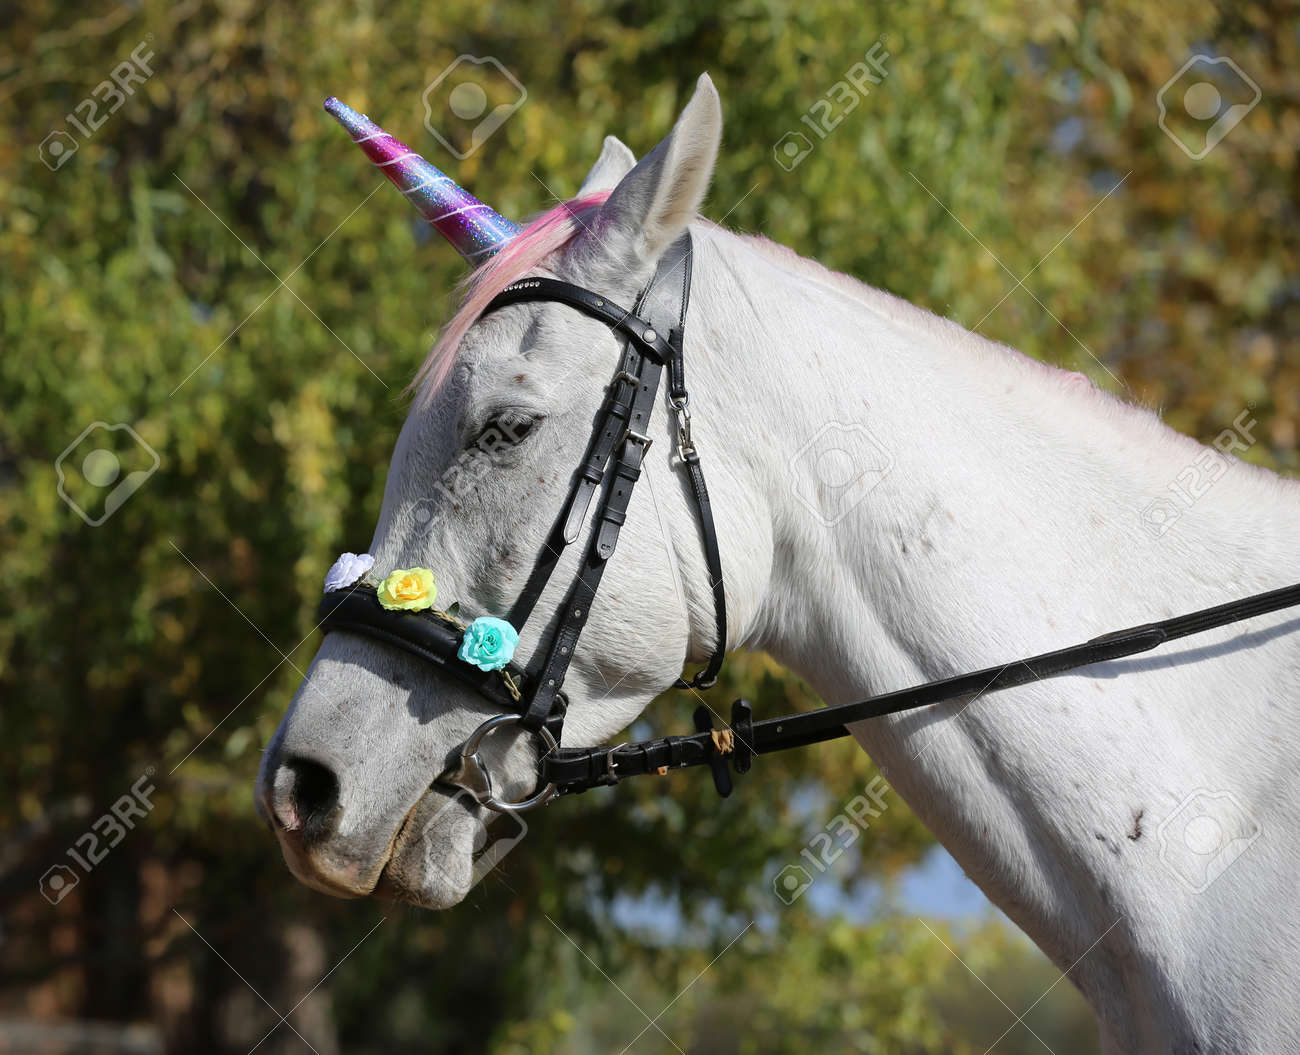 Beautiful Magical Unicorn Horse Realistic Photography Stock Photo Picture And Royalty Free Image Image 138174628